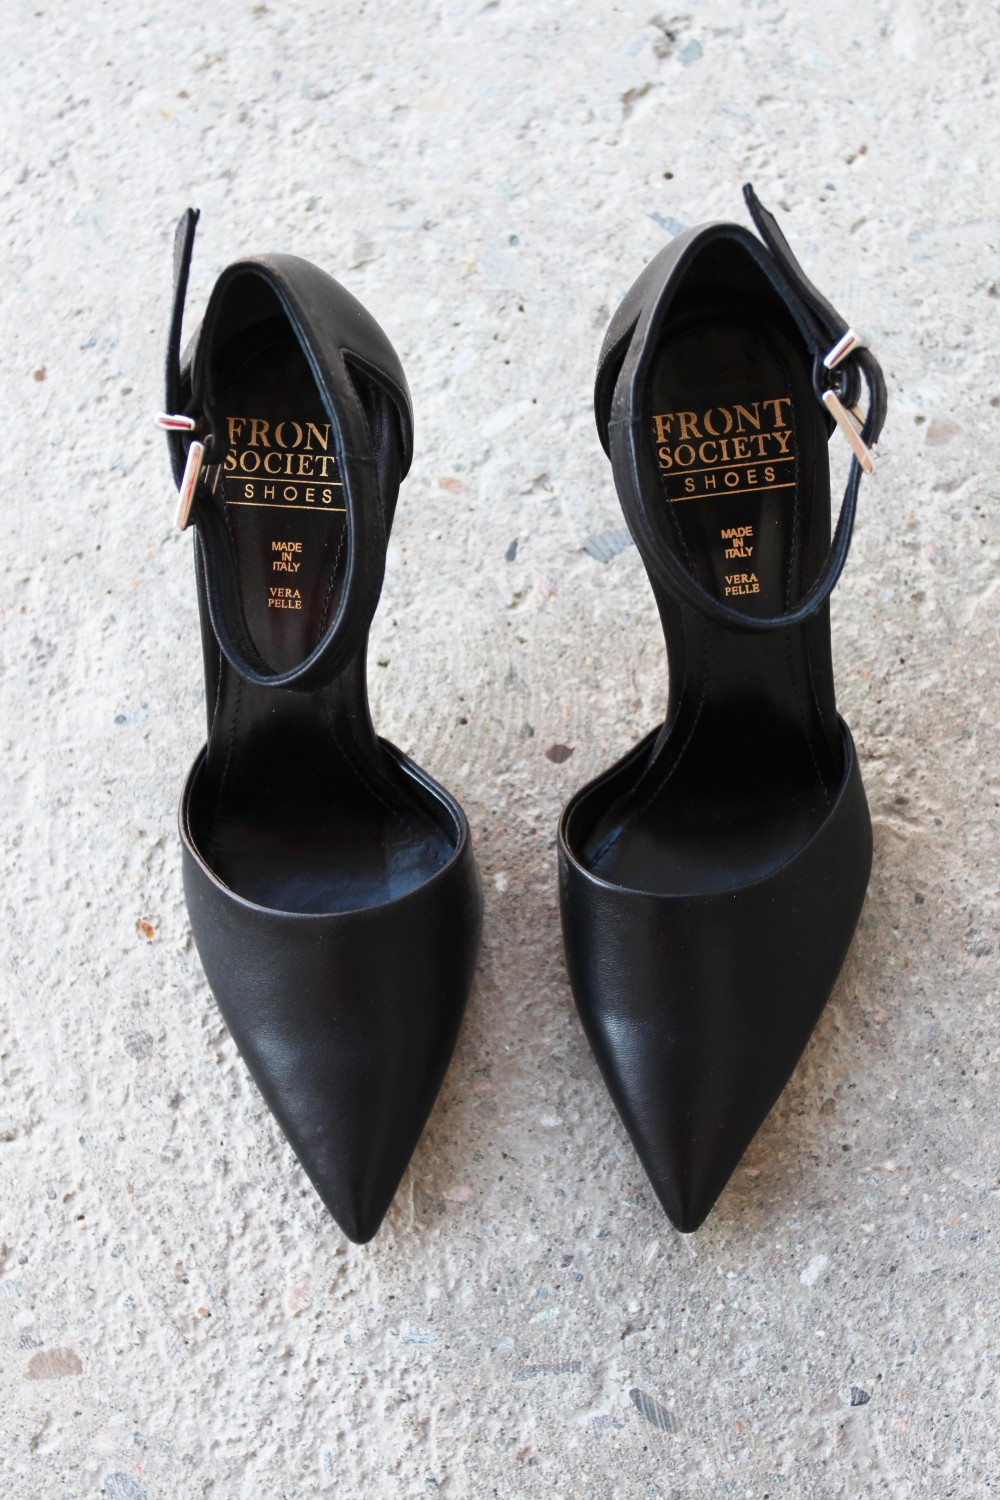 Front Society Shoes Parma Black